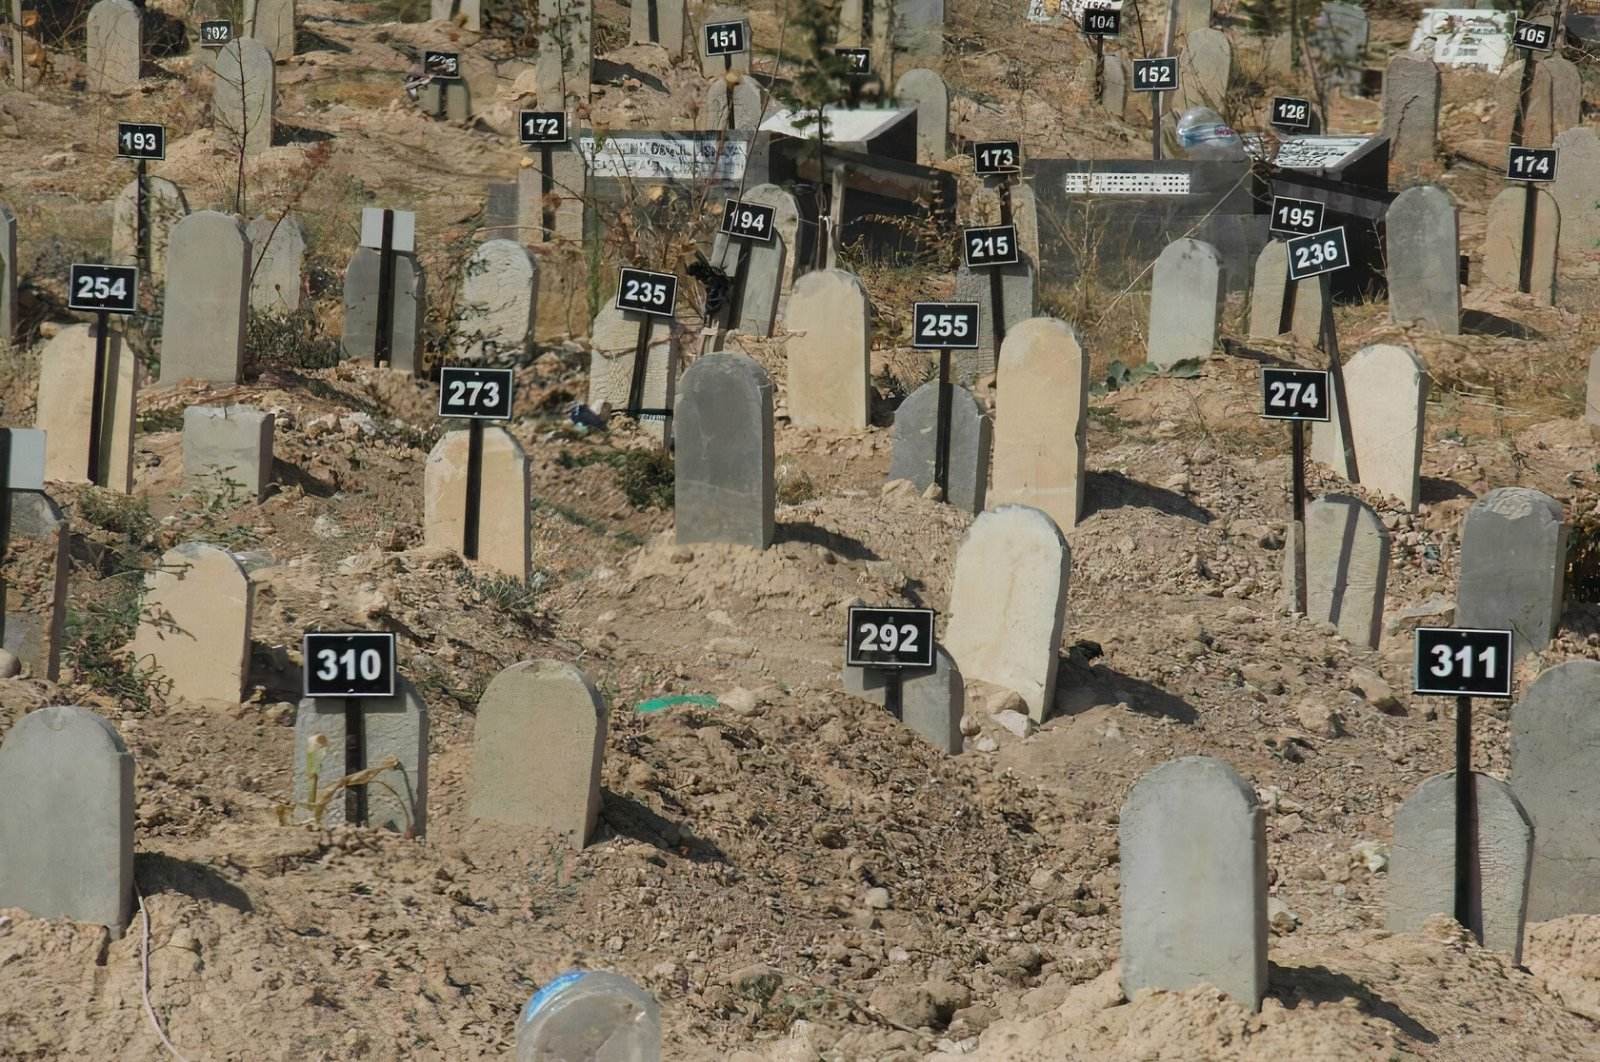 A view shows the common cemetery in Istanbul's Kilyos district, Aug. 25, 2021. (Sabah Photo)